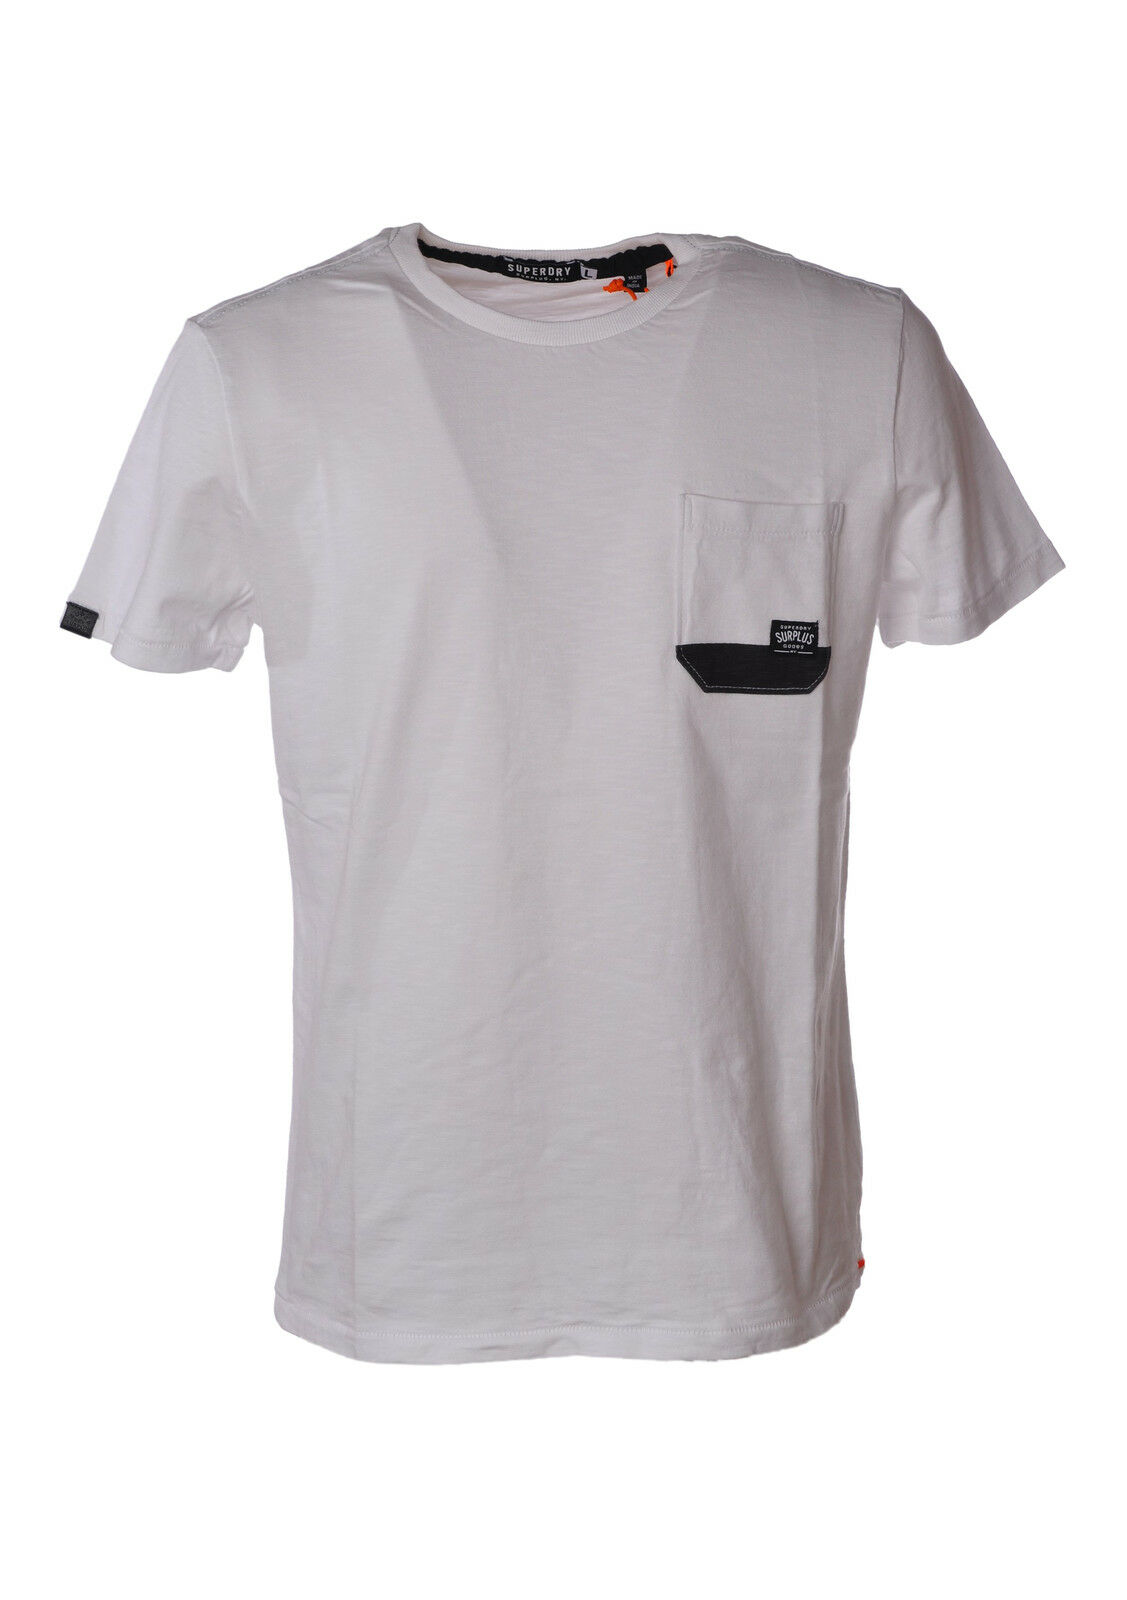 Superdry  -  T - Male - White - 3478321A183932